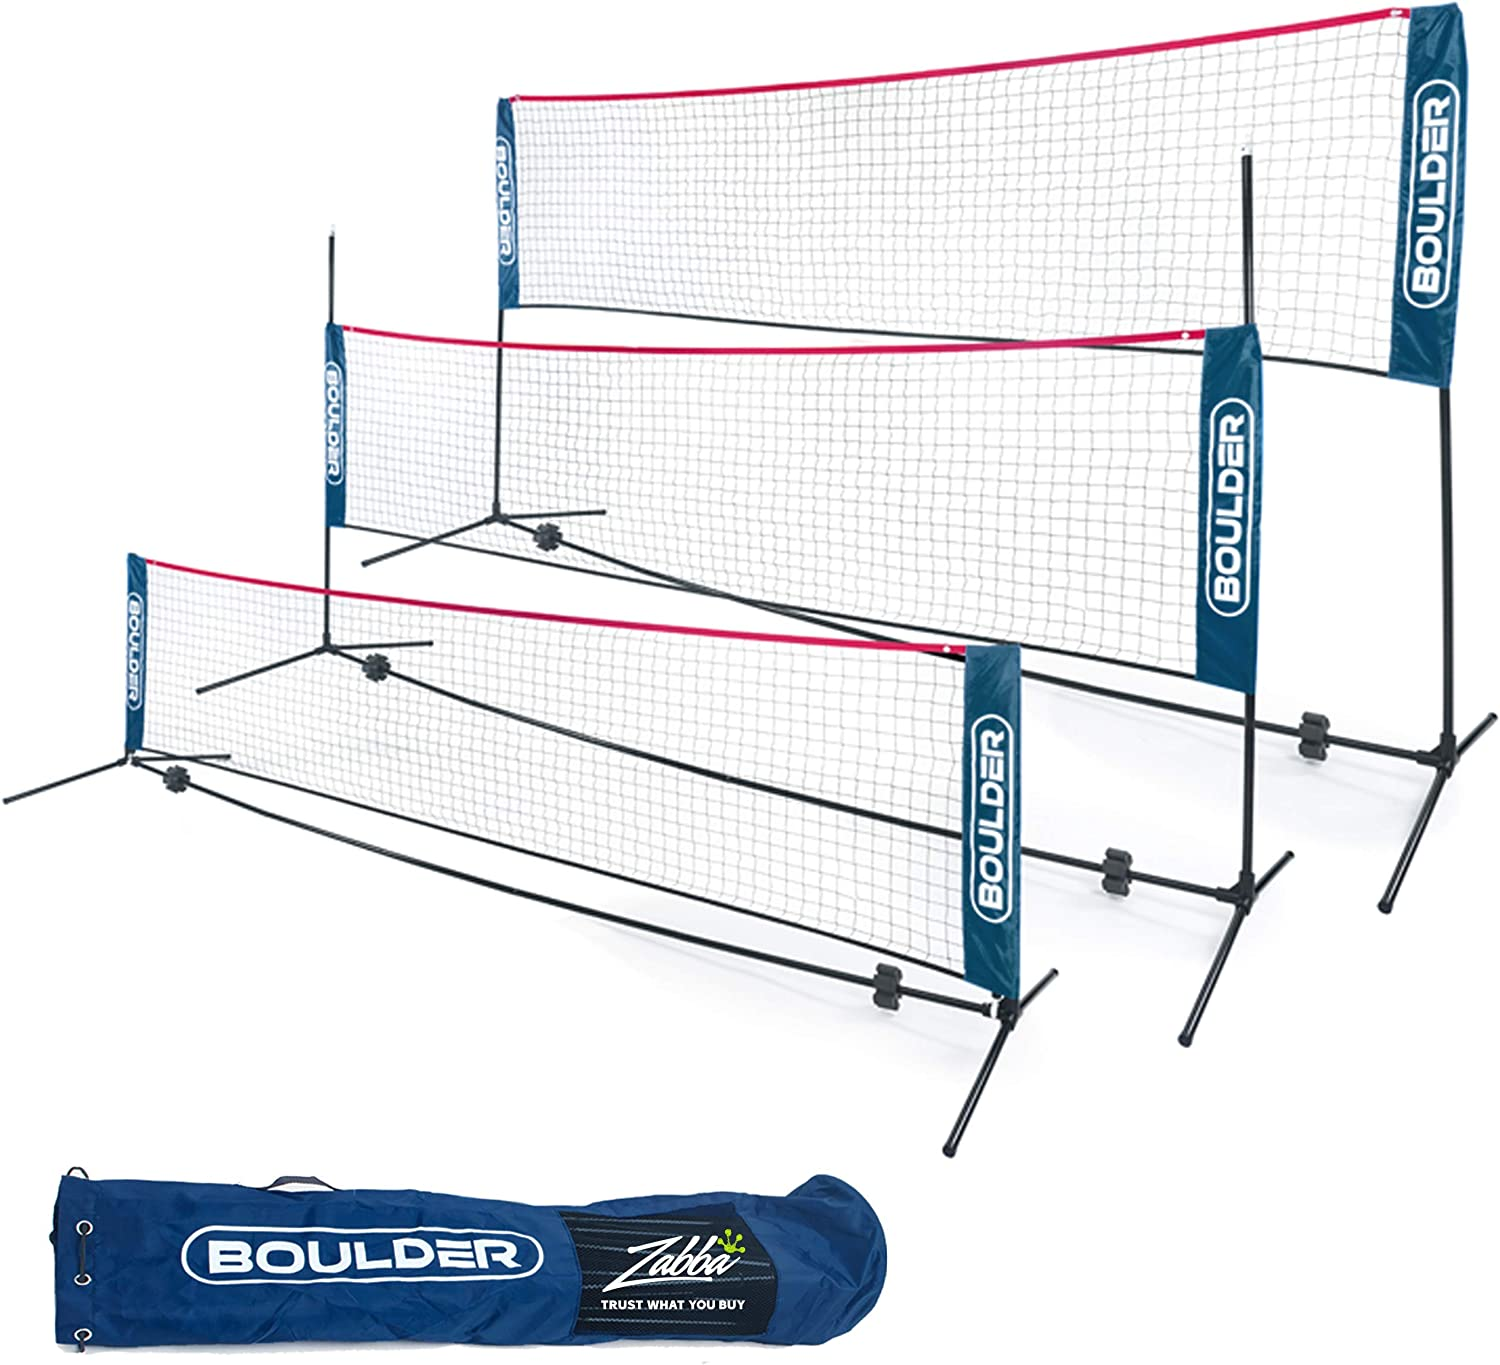 Boulder Portable Badminton Net Set - for Tennis, Soccer Tennis, Pickleball, Kids Volleyball - Easy Setup Nylon Sports Net with Poles : Sports & Outdoors